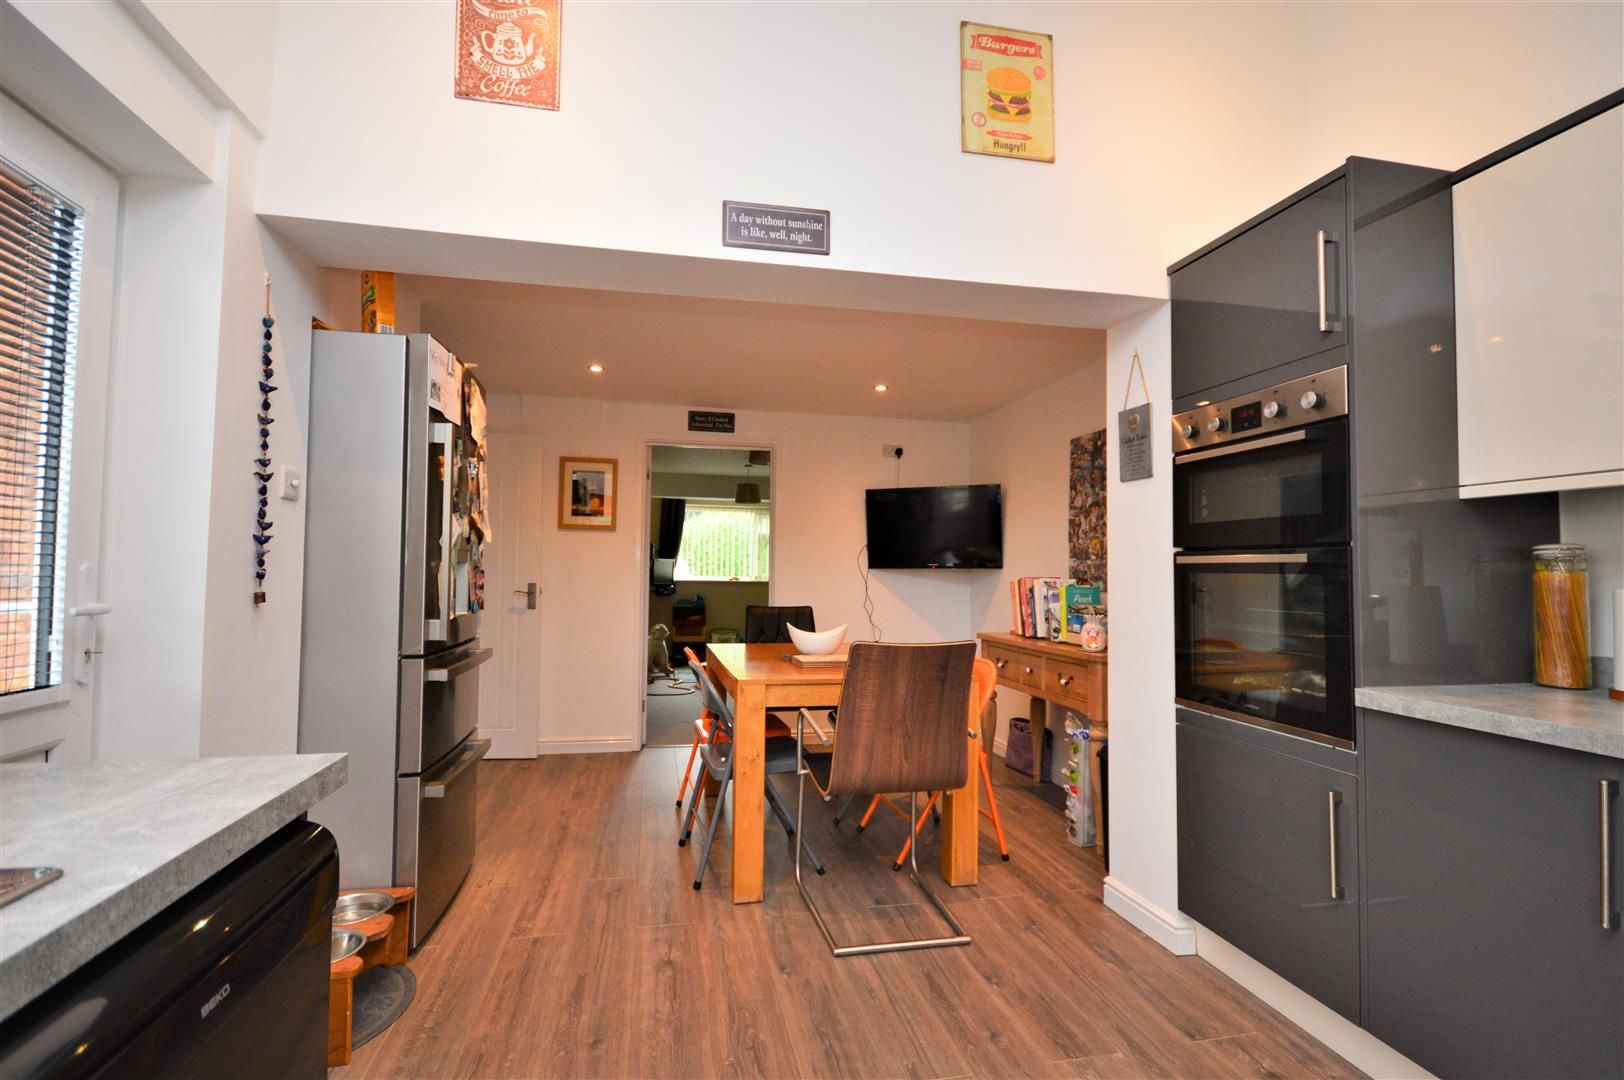 4 bed semi-detached for sale in Clehonger 6